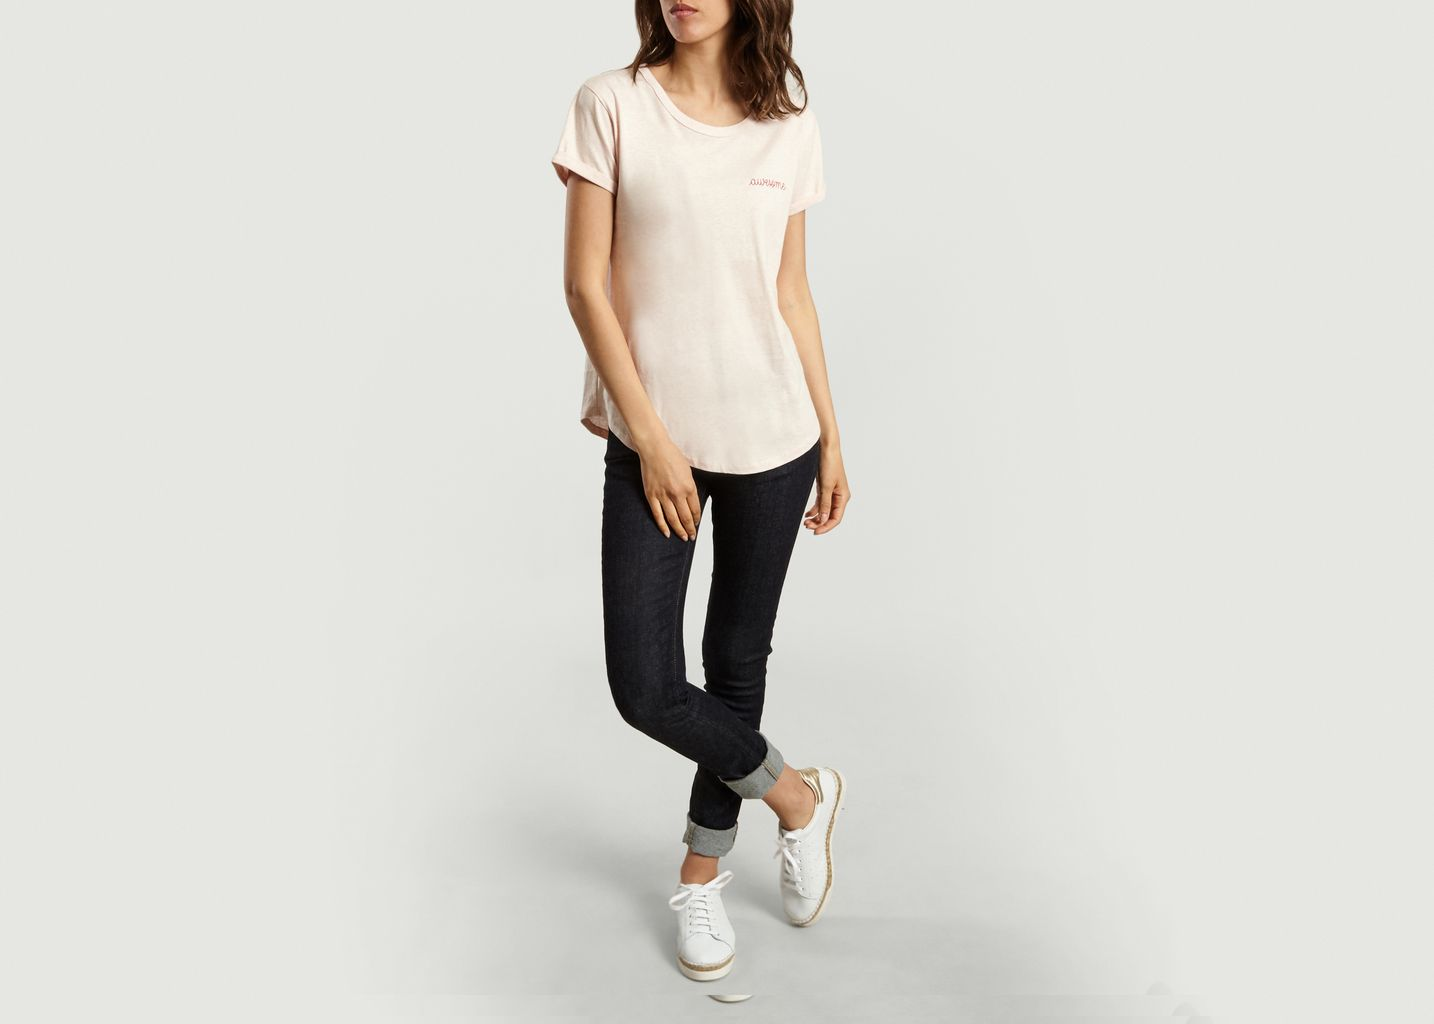 T-shirt Awesome  - Maison Labiche